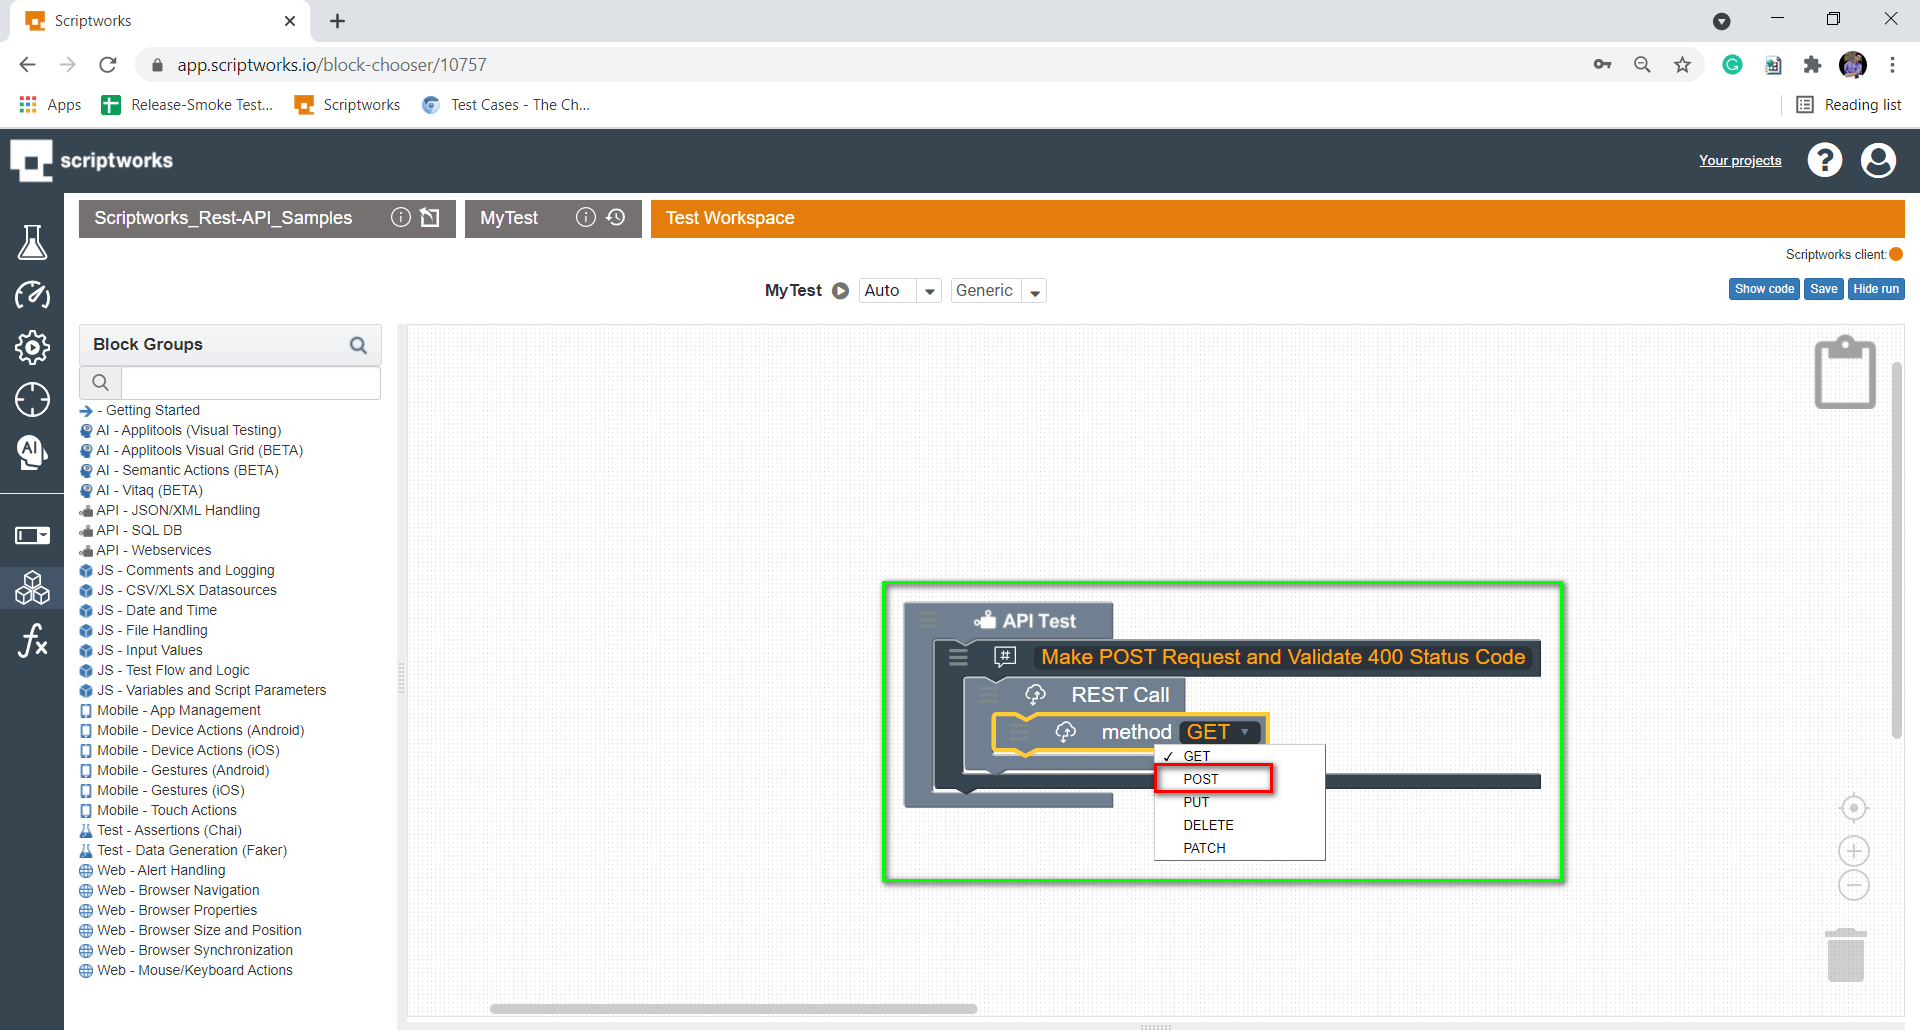 Select POST Method from the Dropdown